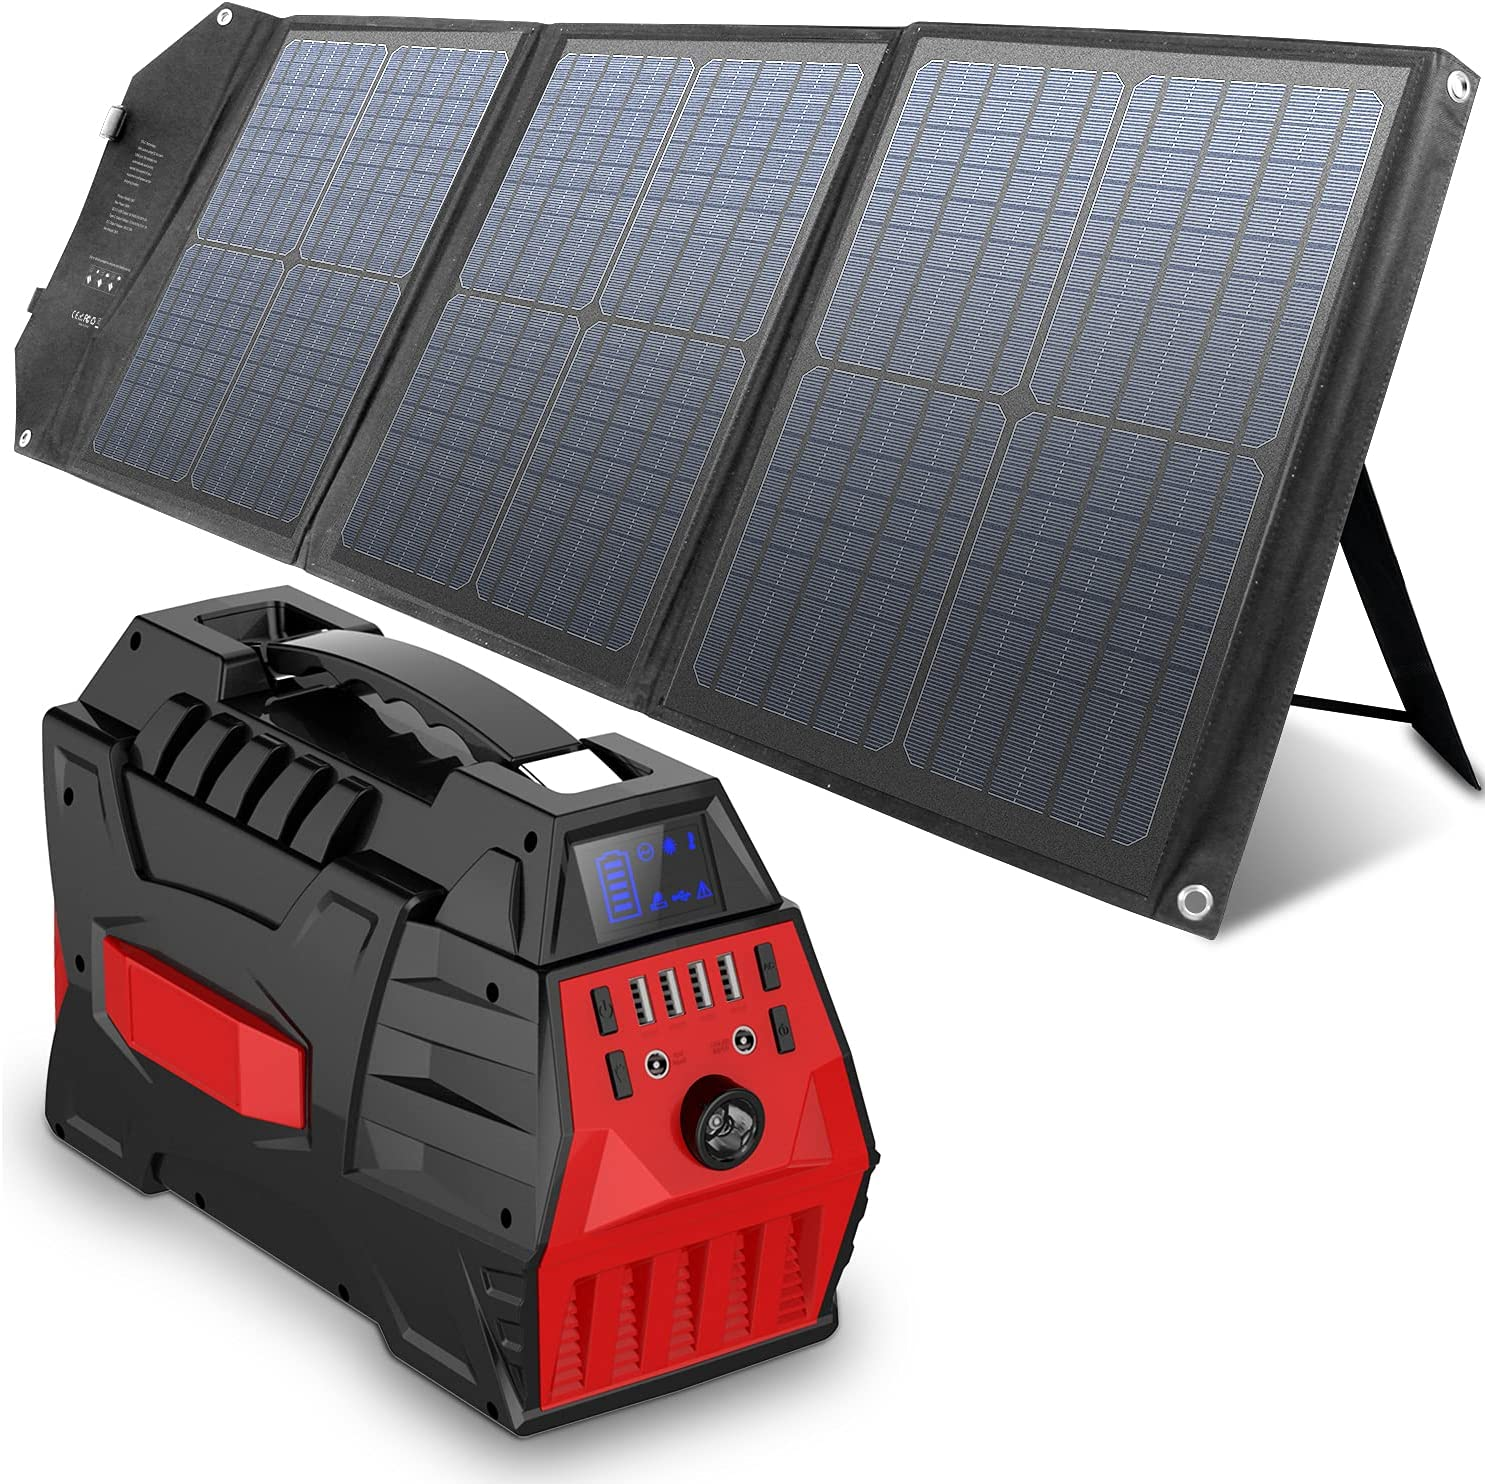 296Wh Portable National uniform free shipping Power Station with Solar Panel Large discharge sale Generat 60W